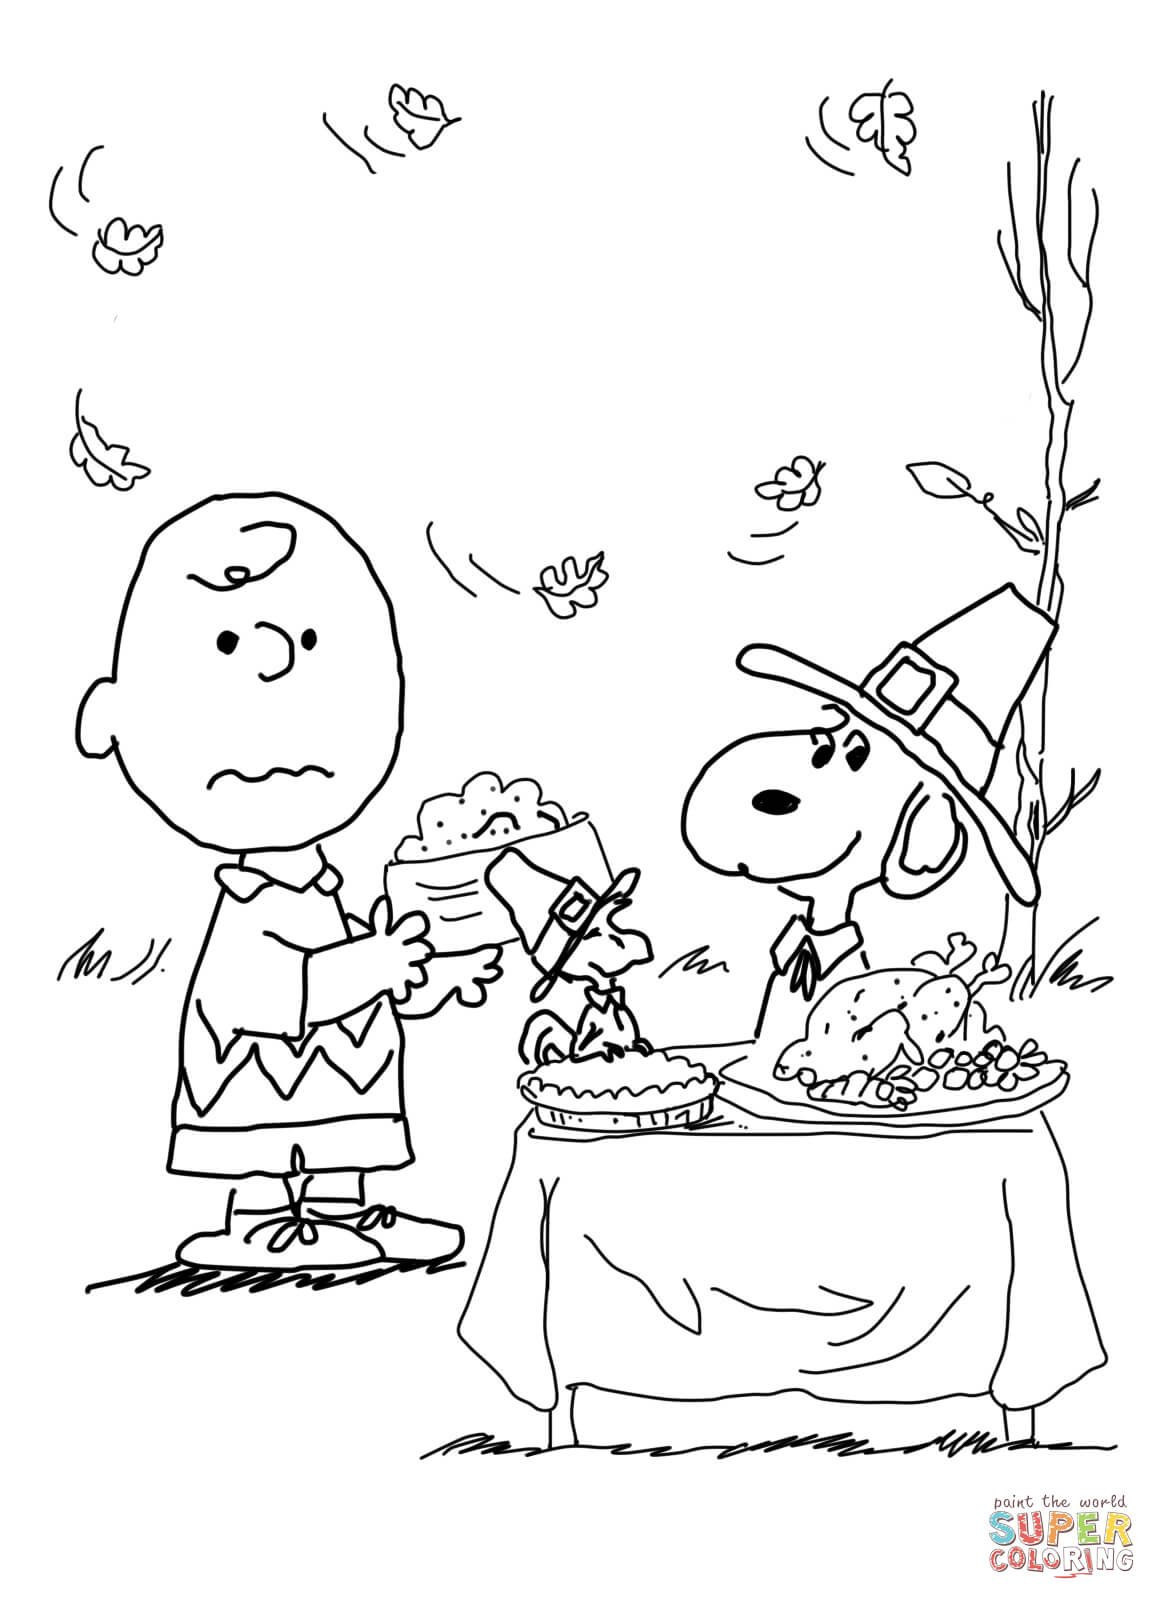 Free Peanuts Coloring Pages, Download Free Clip Art, Free Free Printable Snoopy Images